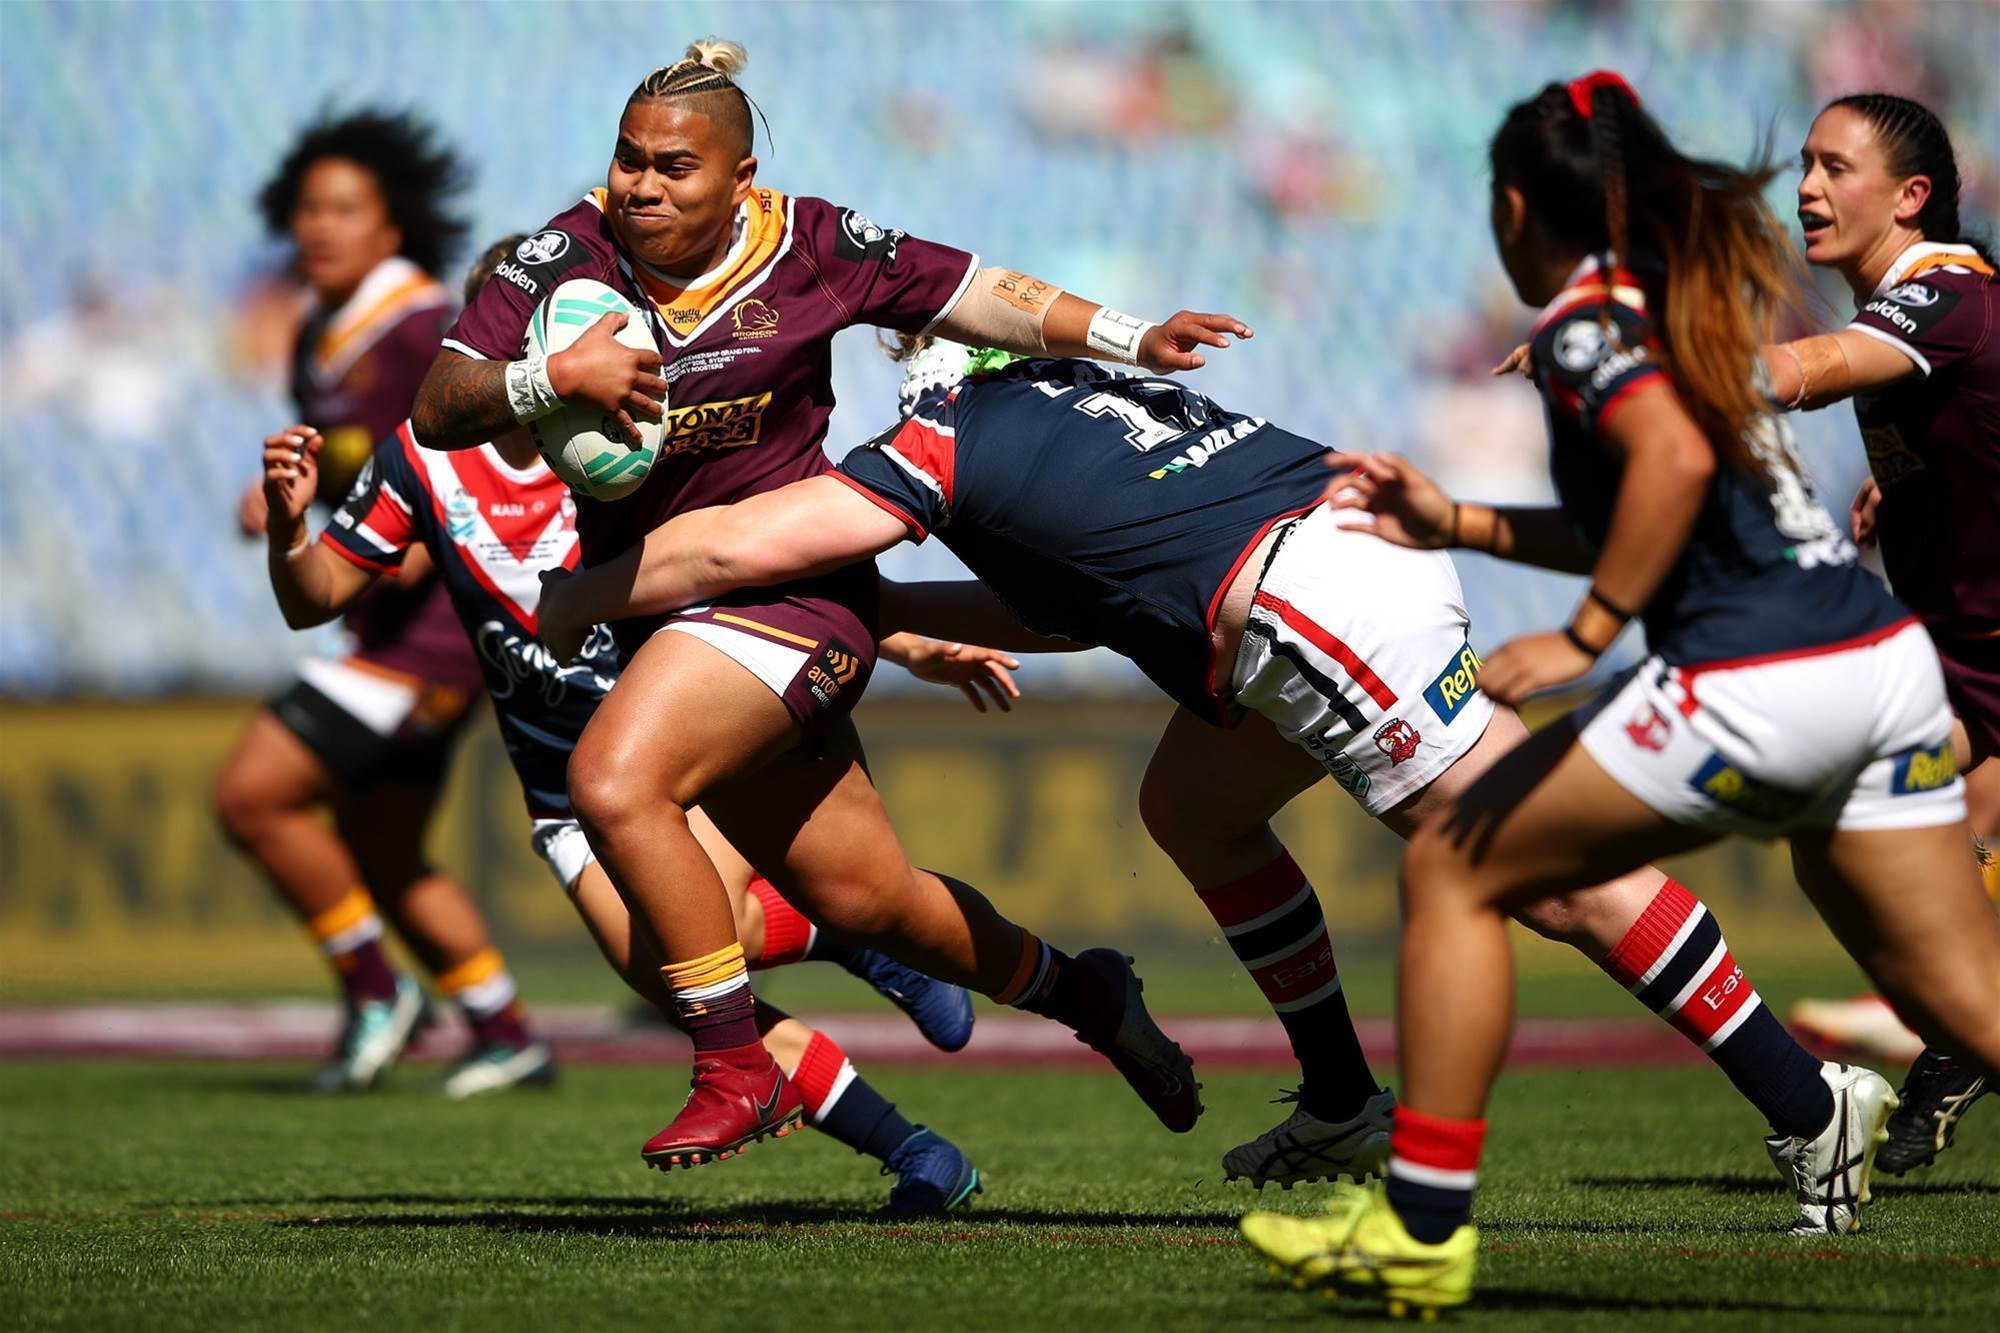 Pic special: Women's NRL Grand Final action